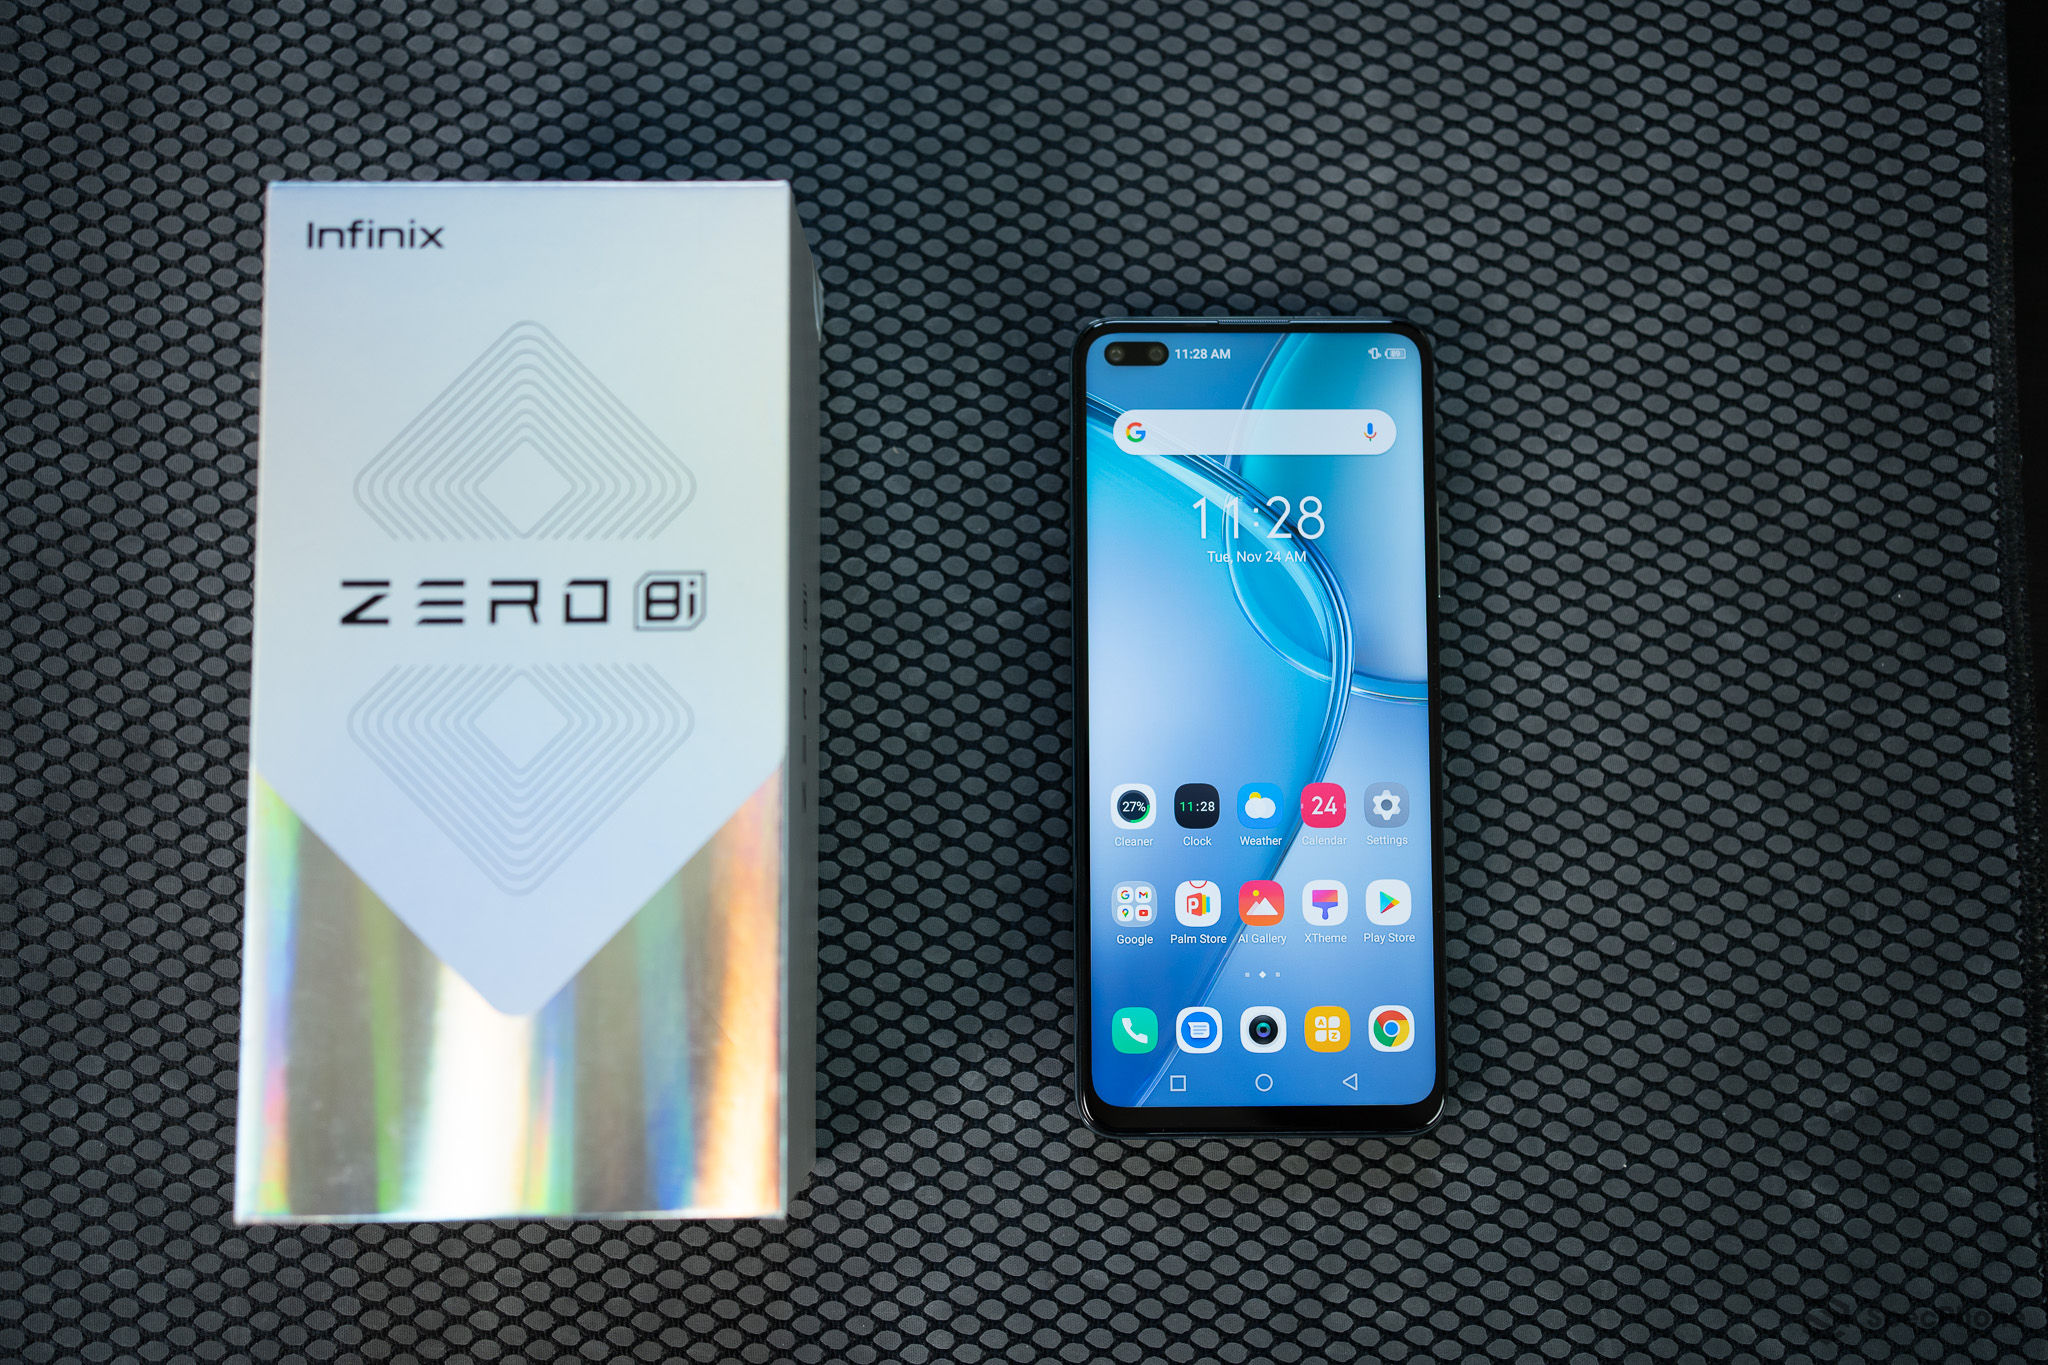 Review Infinix Zero 8i 18